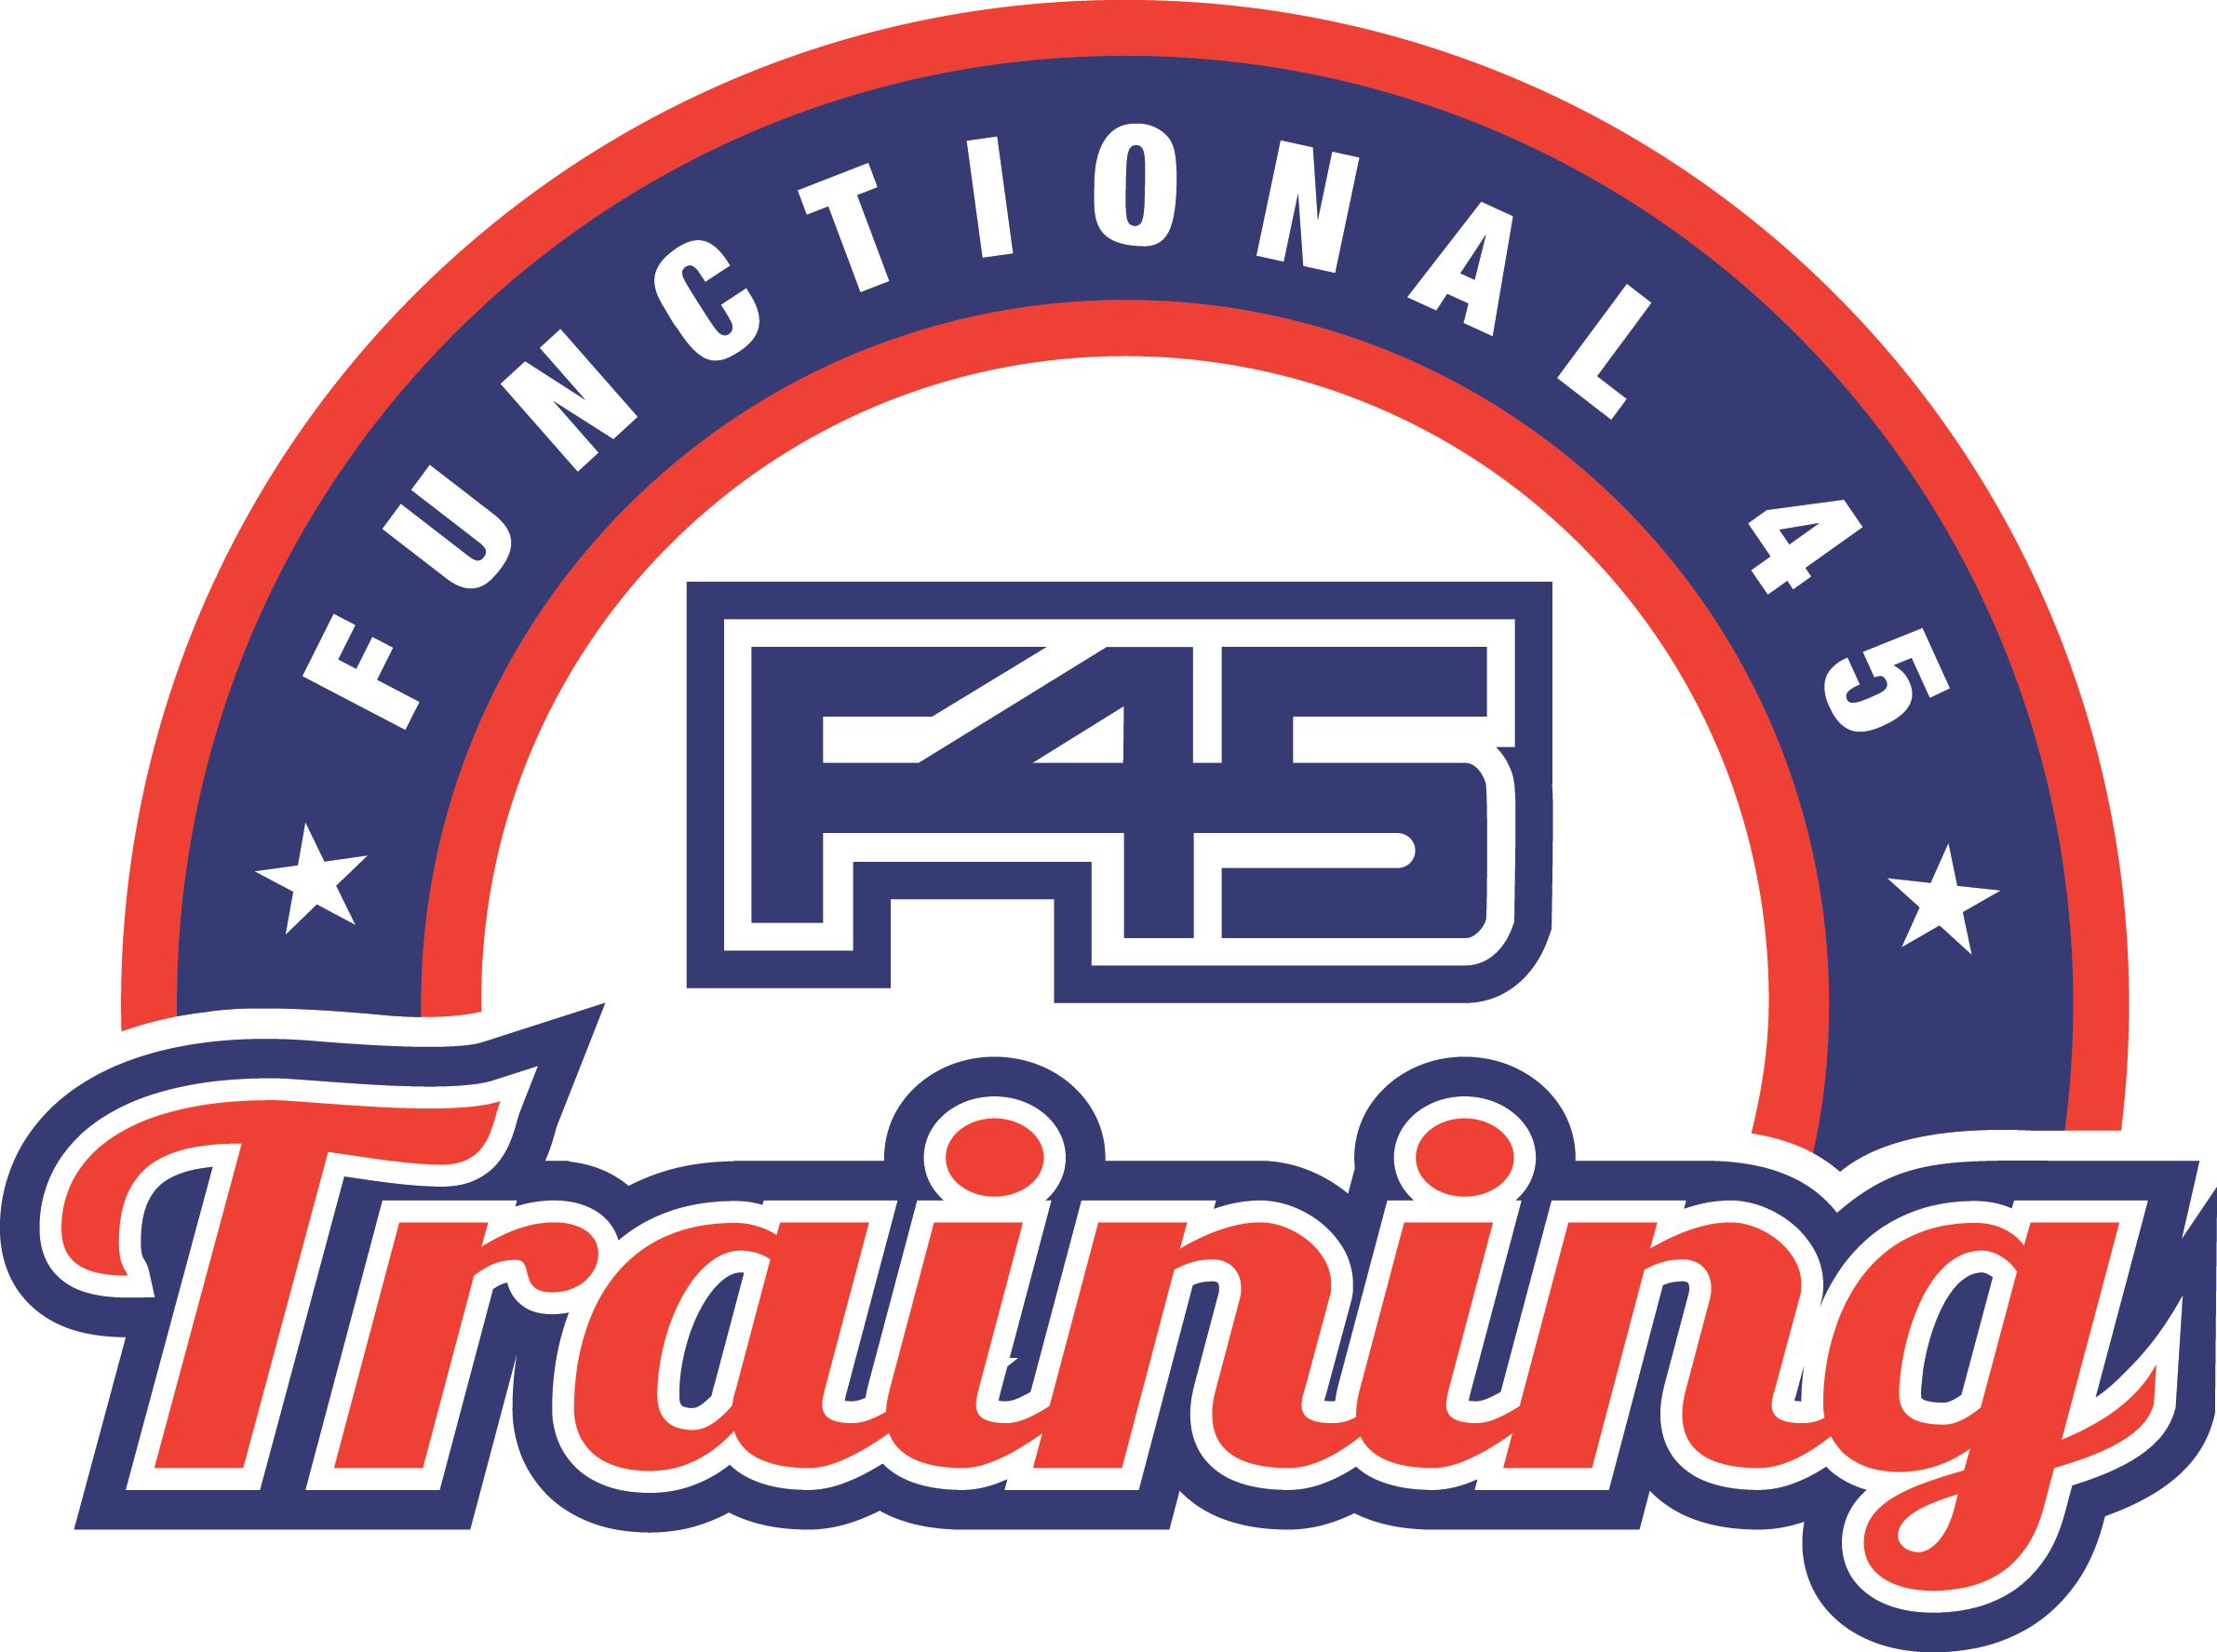 Park Lane - F45 Training is the new training technique leaving competition and clients gasping for air. F45 is the most innovative, challenging and systemised team training workout in the world. Come and train like the stars at F45 Training.